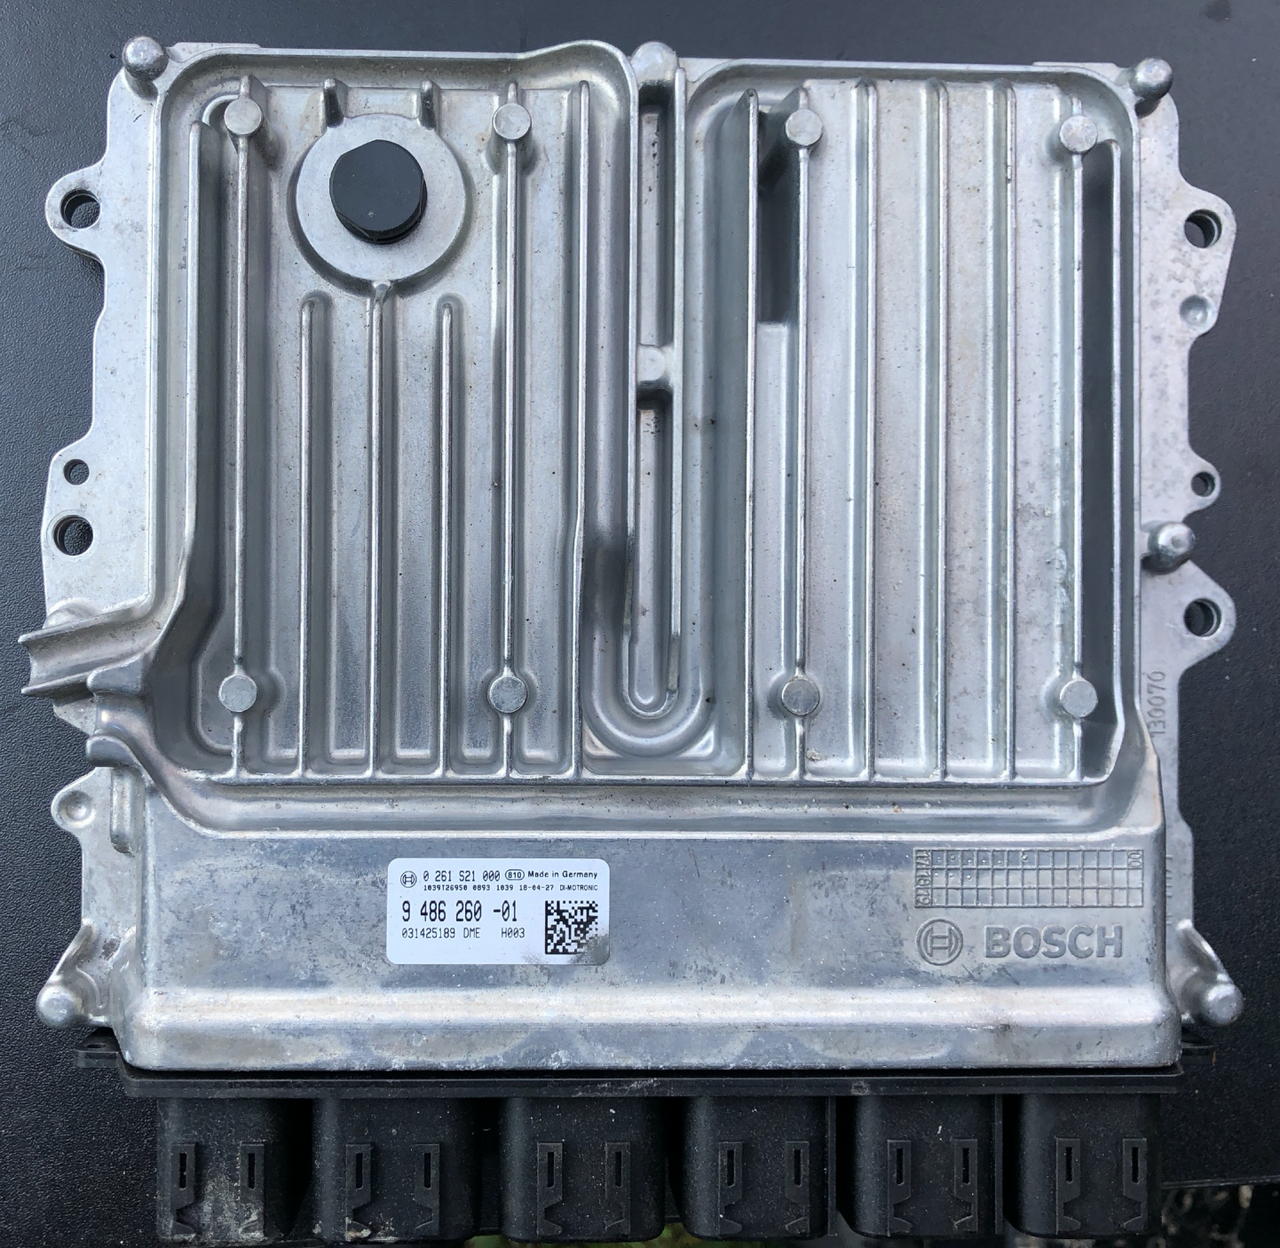 BMW, 0261S21000, 0 261 S21 000, 9486260, 9 486 260, DME, 1039T26950